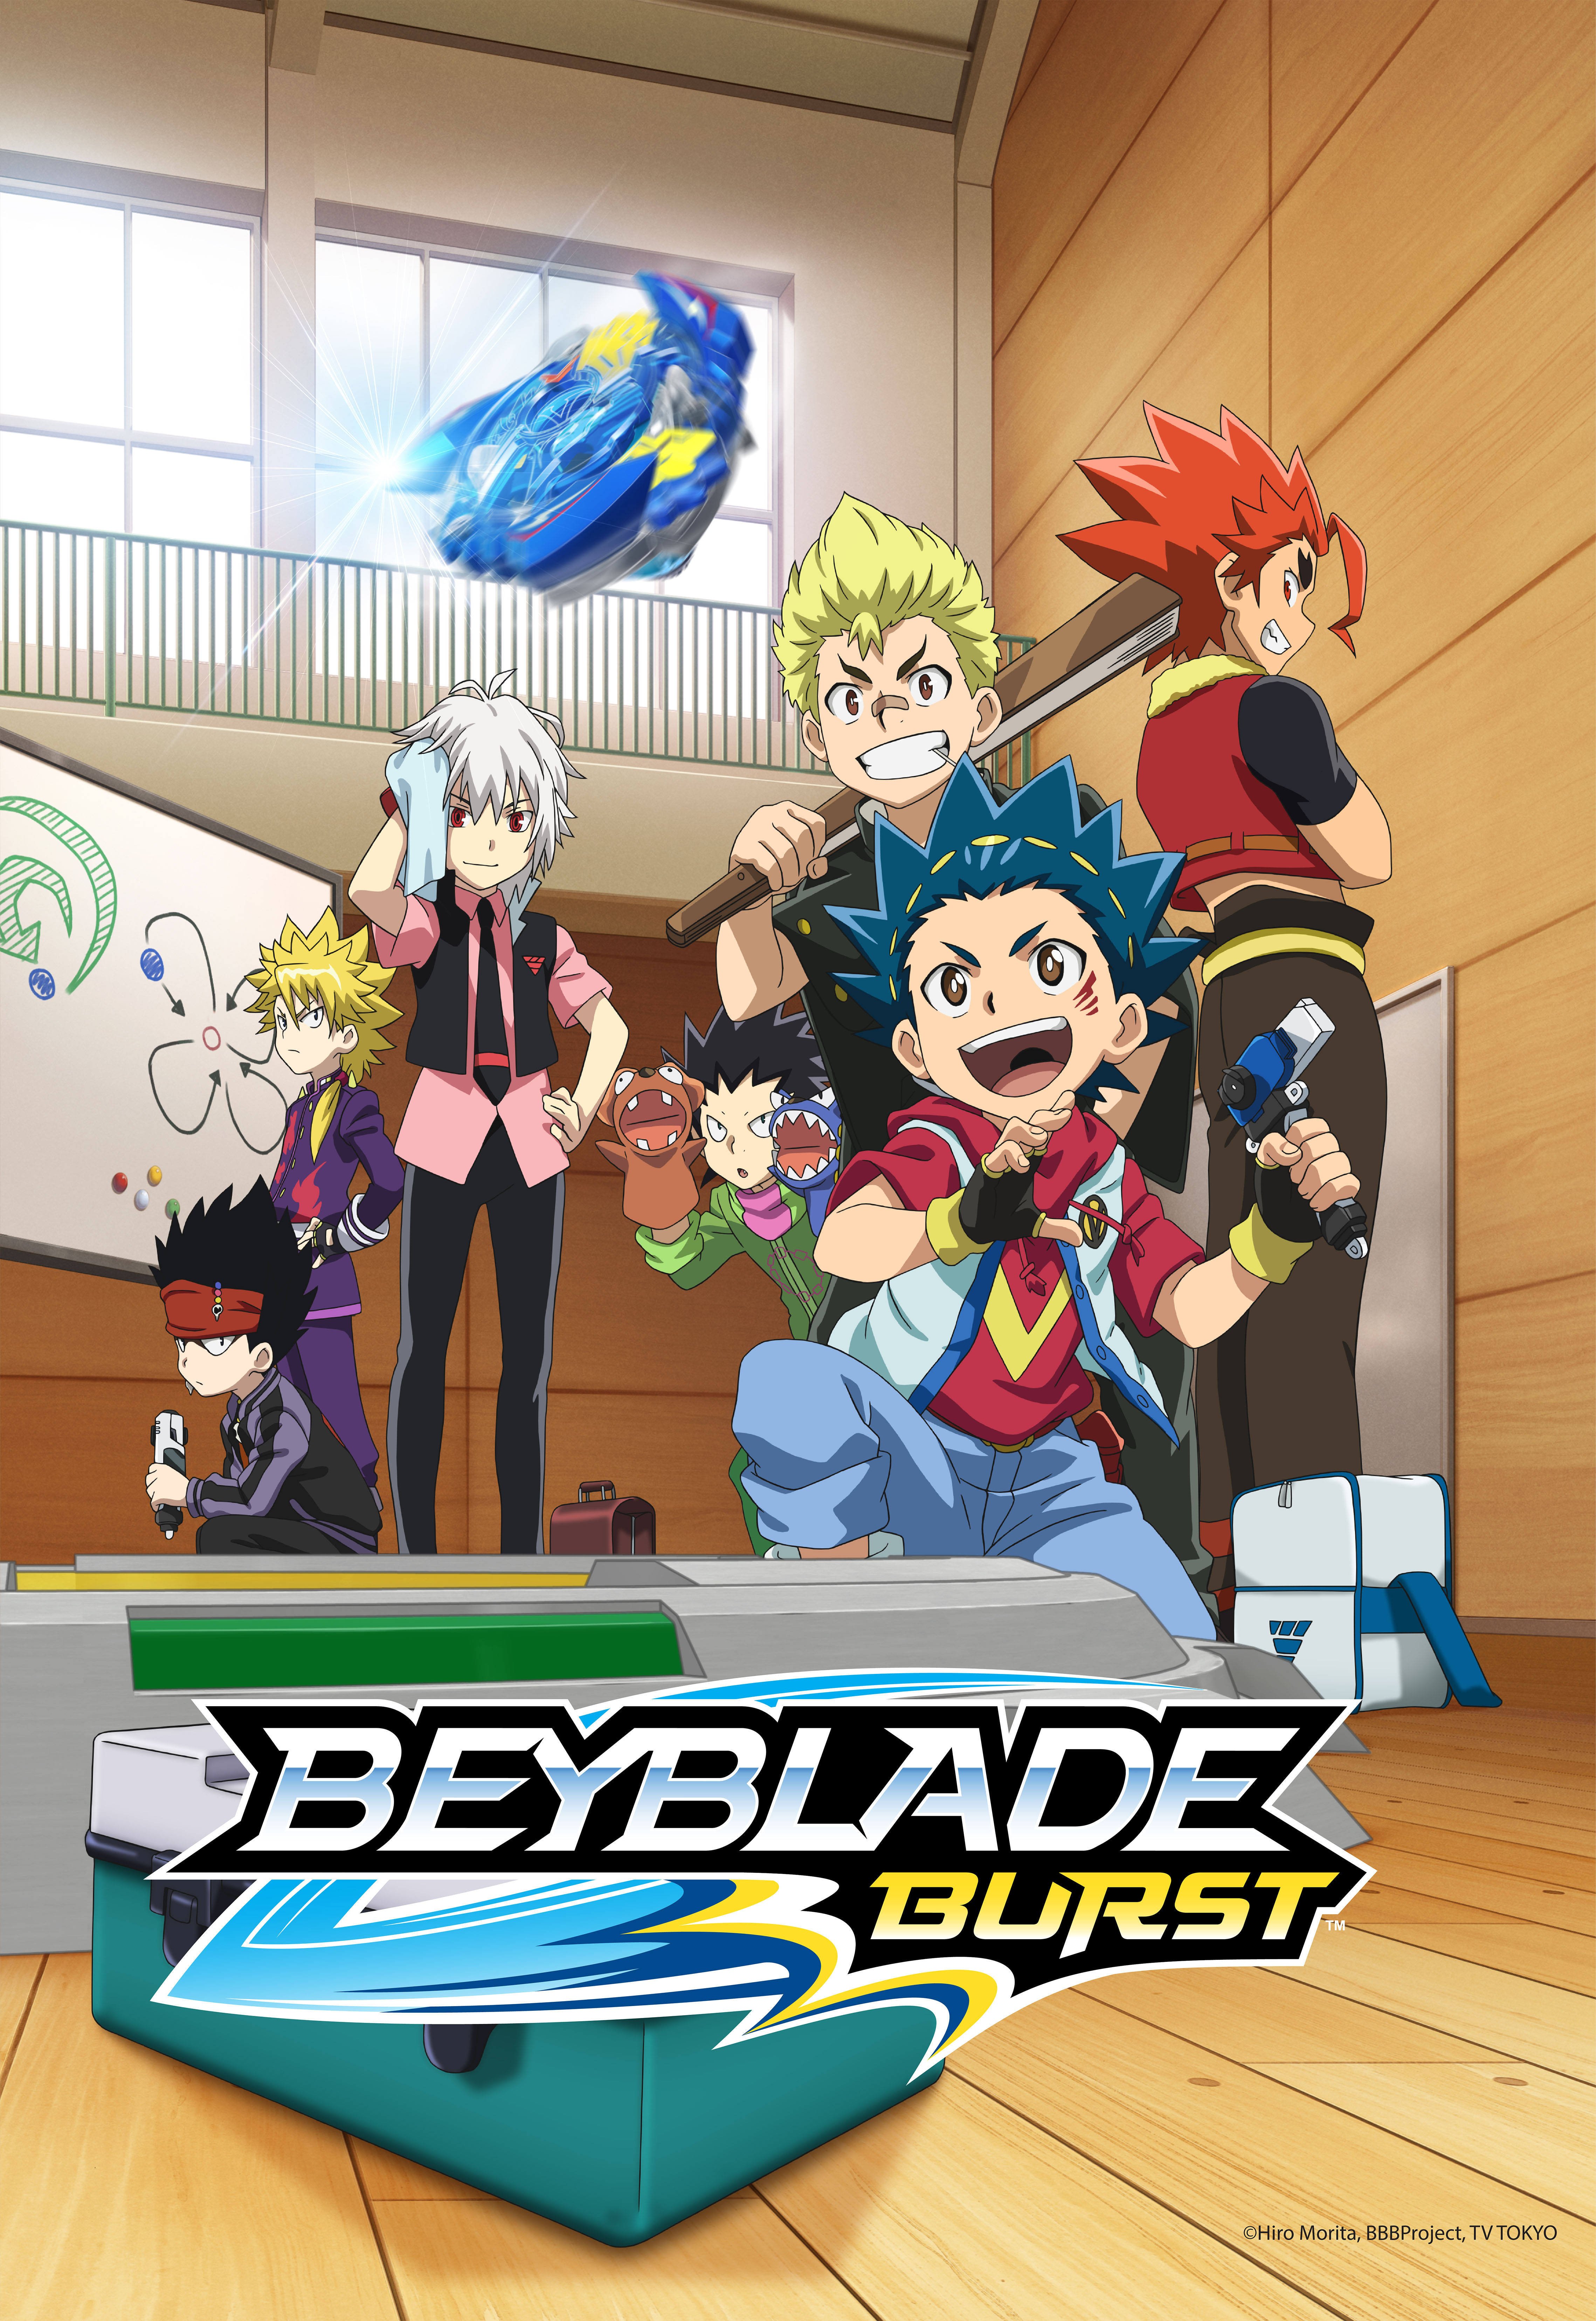 beyblade offers fans a new way to battle with the launch of beyblade